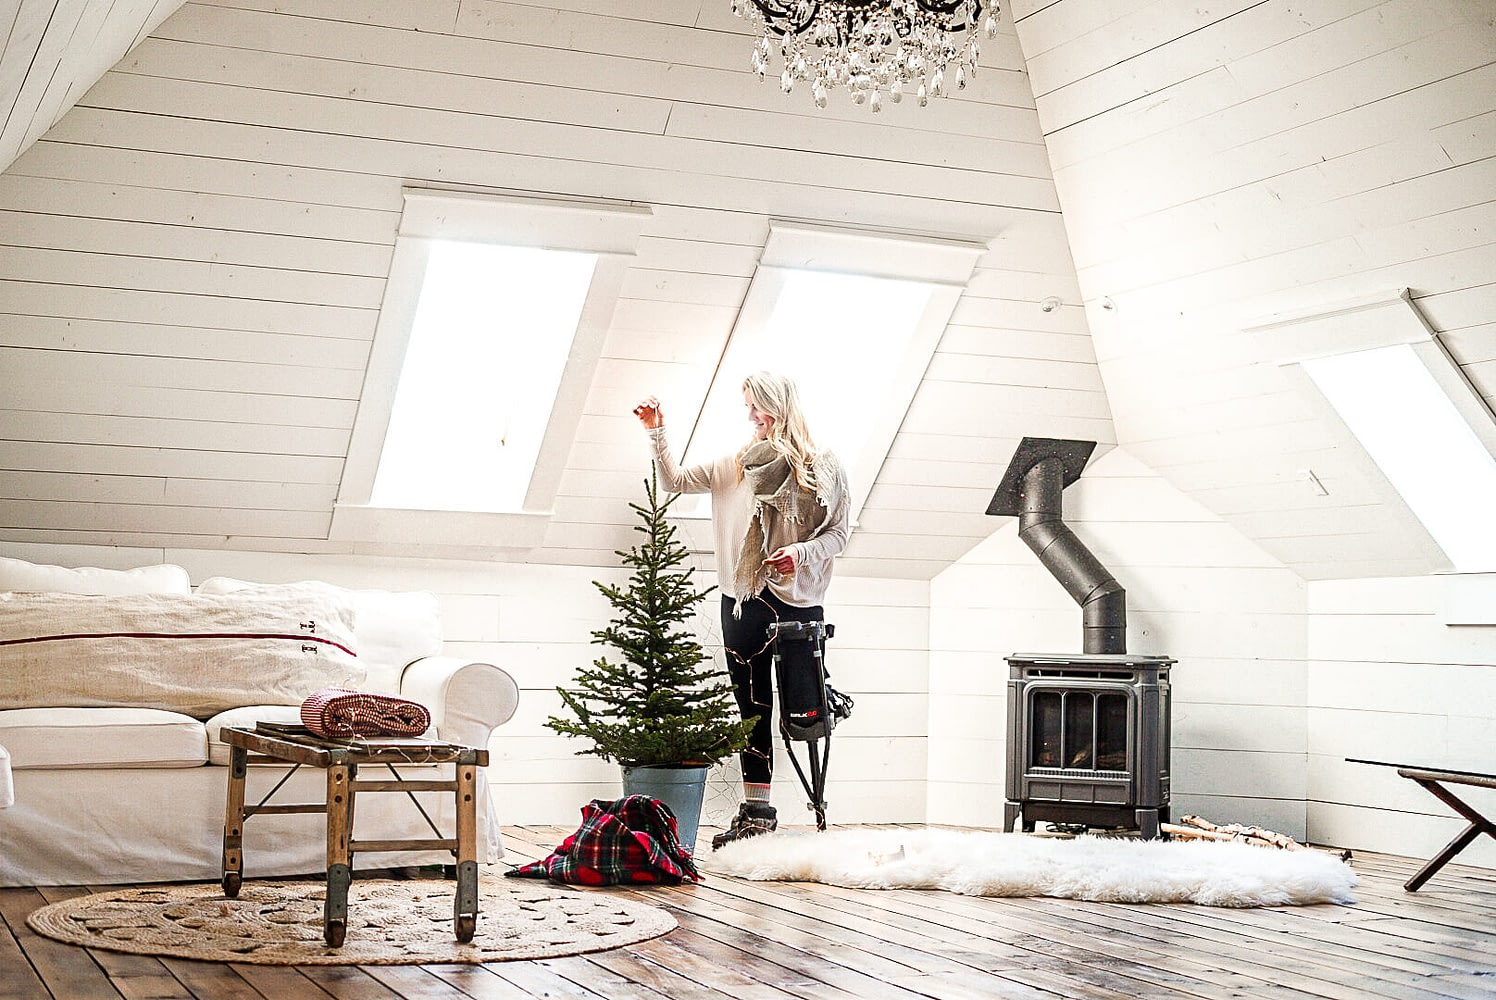 deb in the attic with twinkle lights